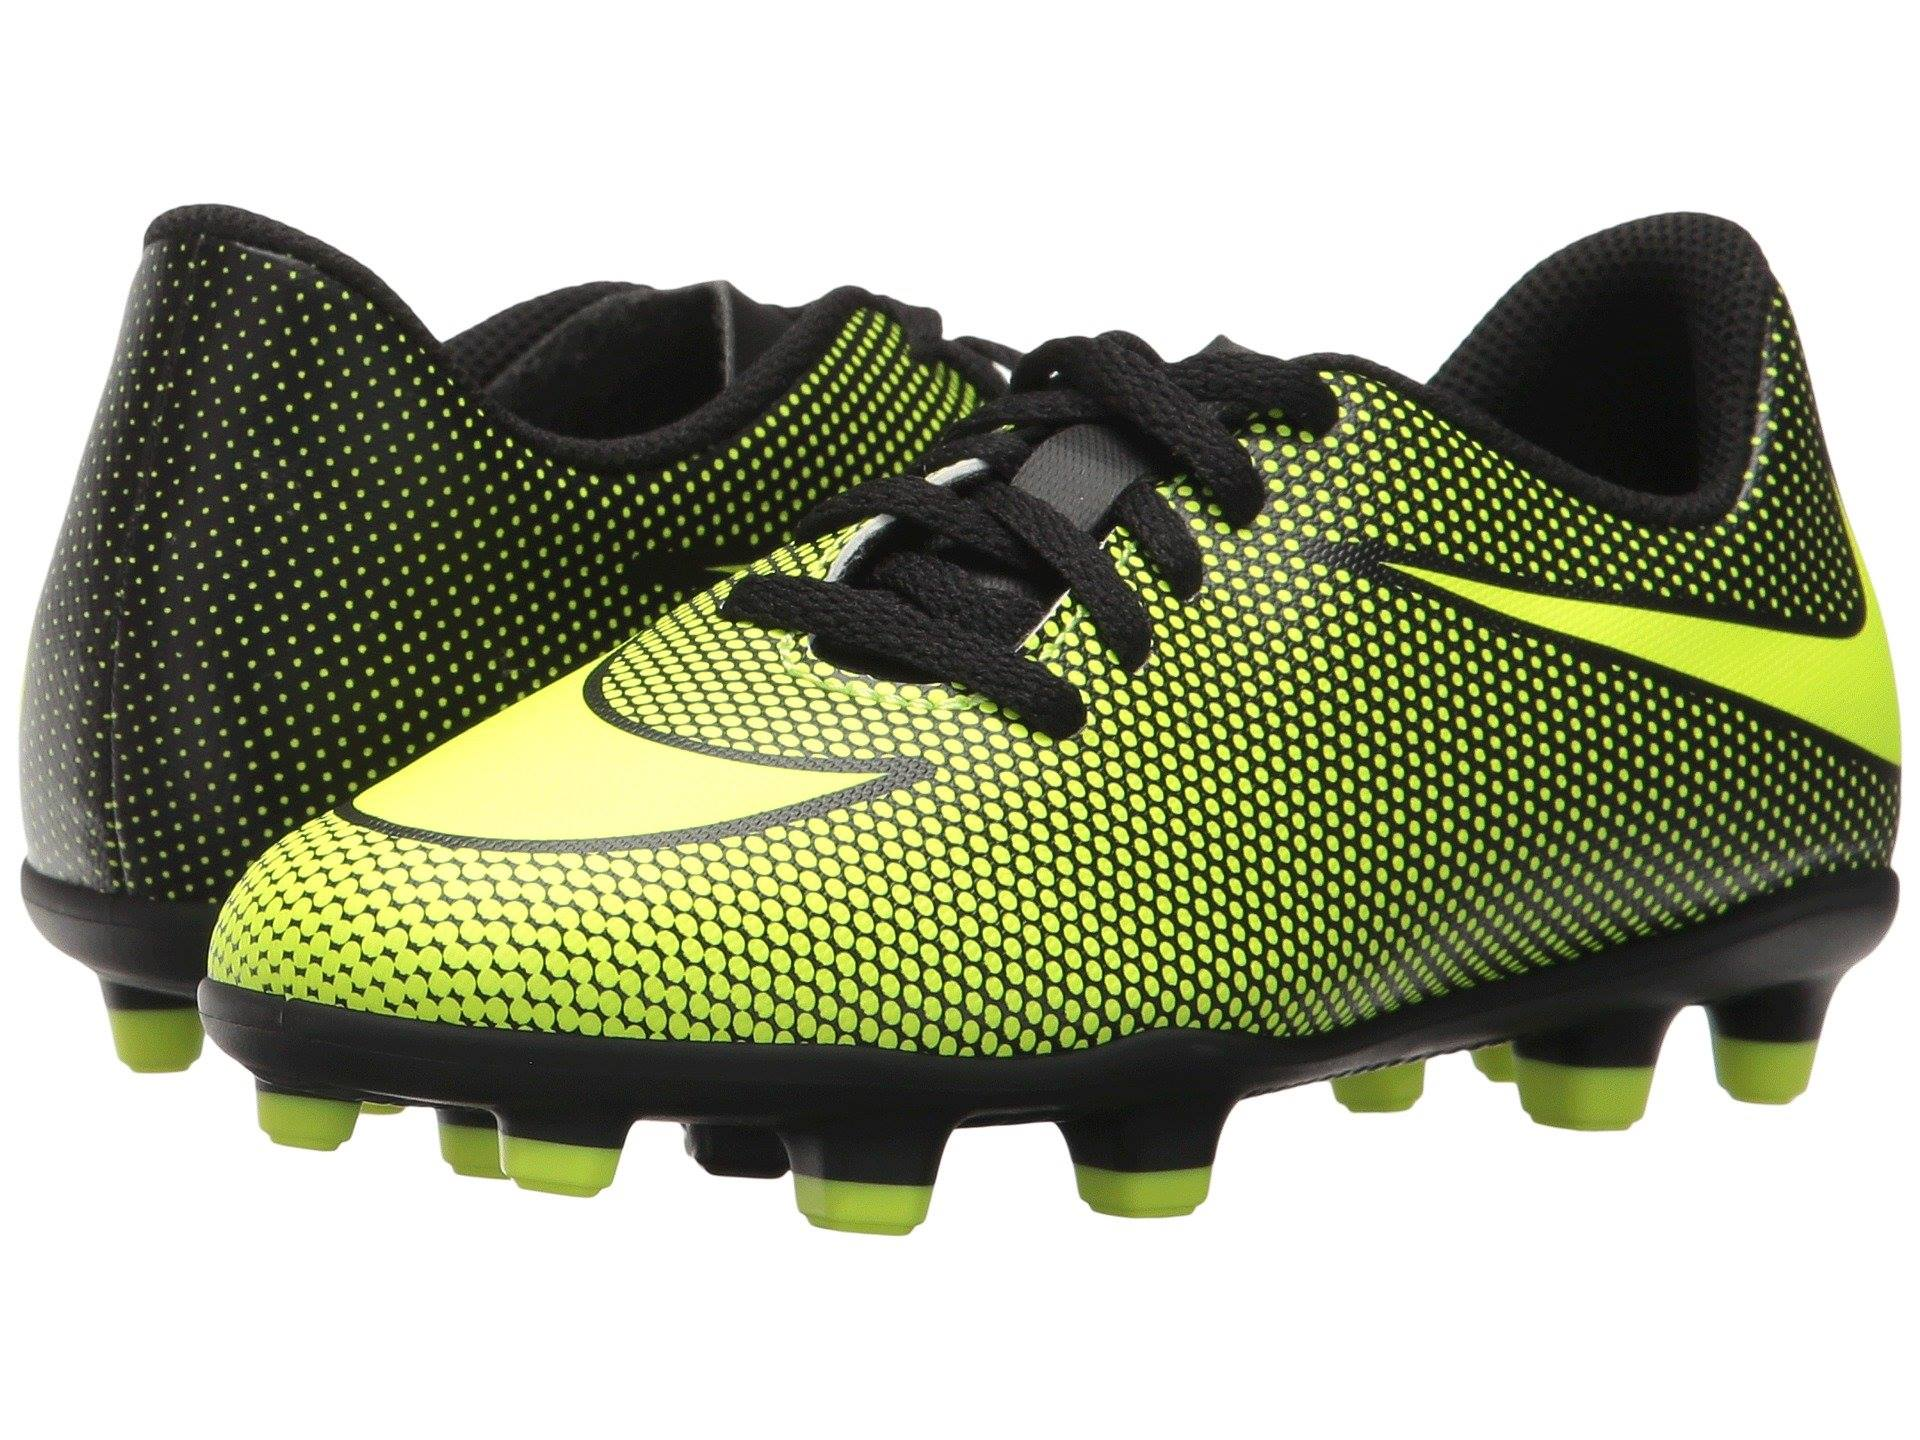 Zappos: Kids' Nike Soccer Cleats – only